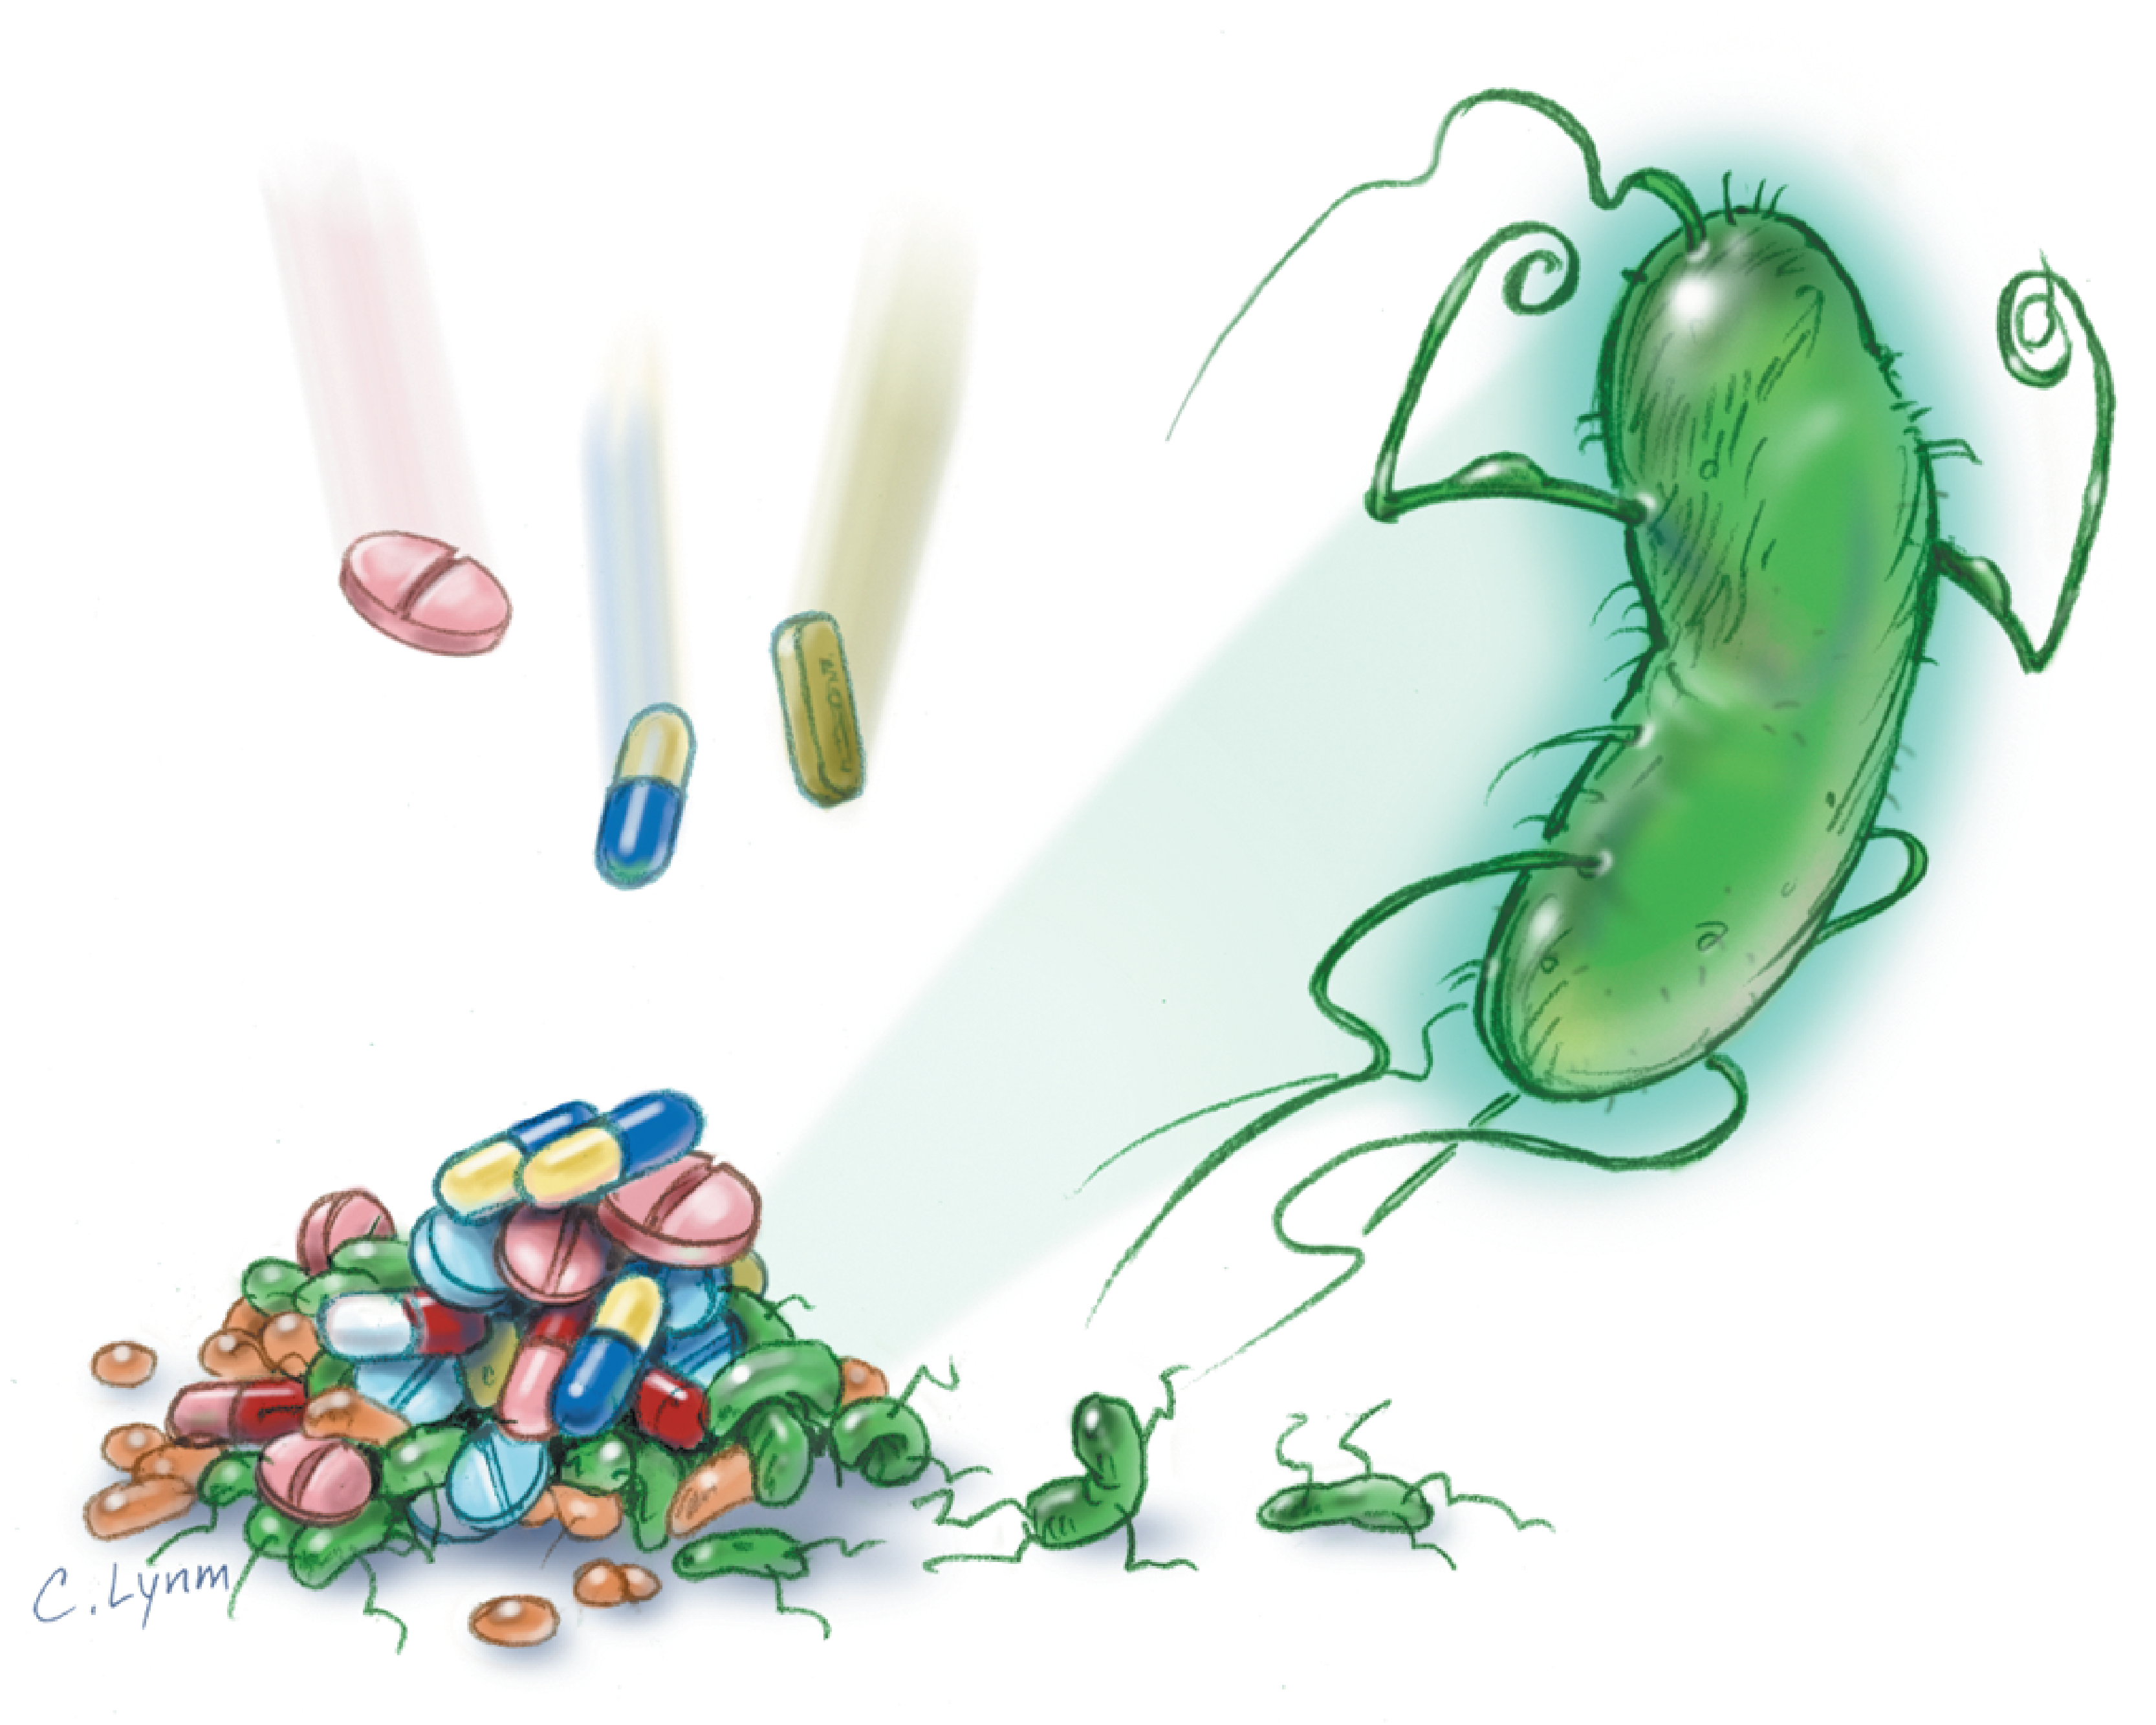 the threat of increasing bacterial resistance